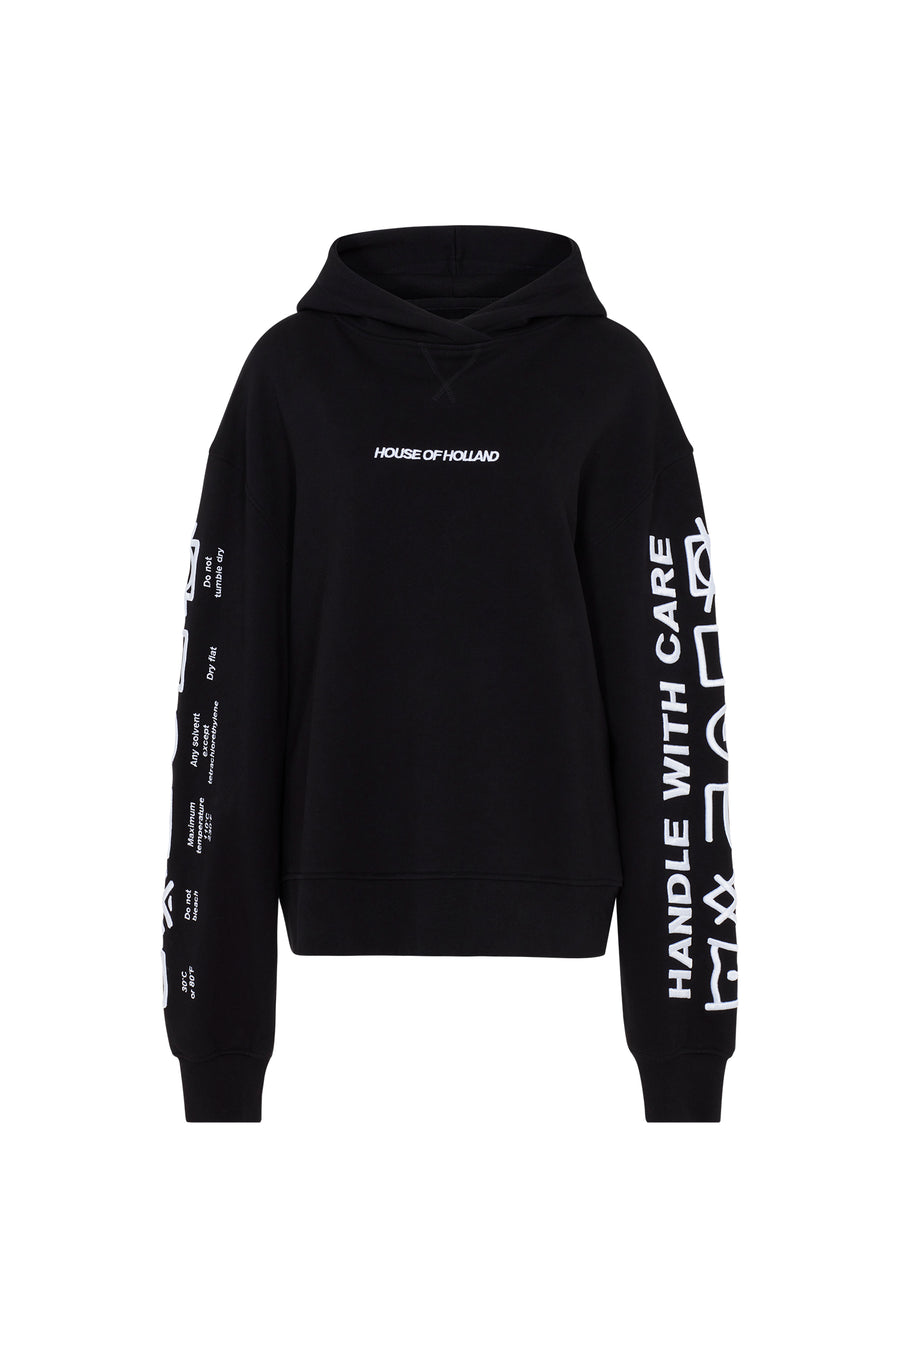 'Handle With Care Oversized' Black Hoodie by House of Holland